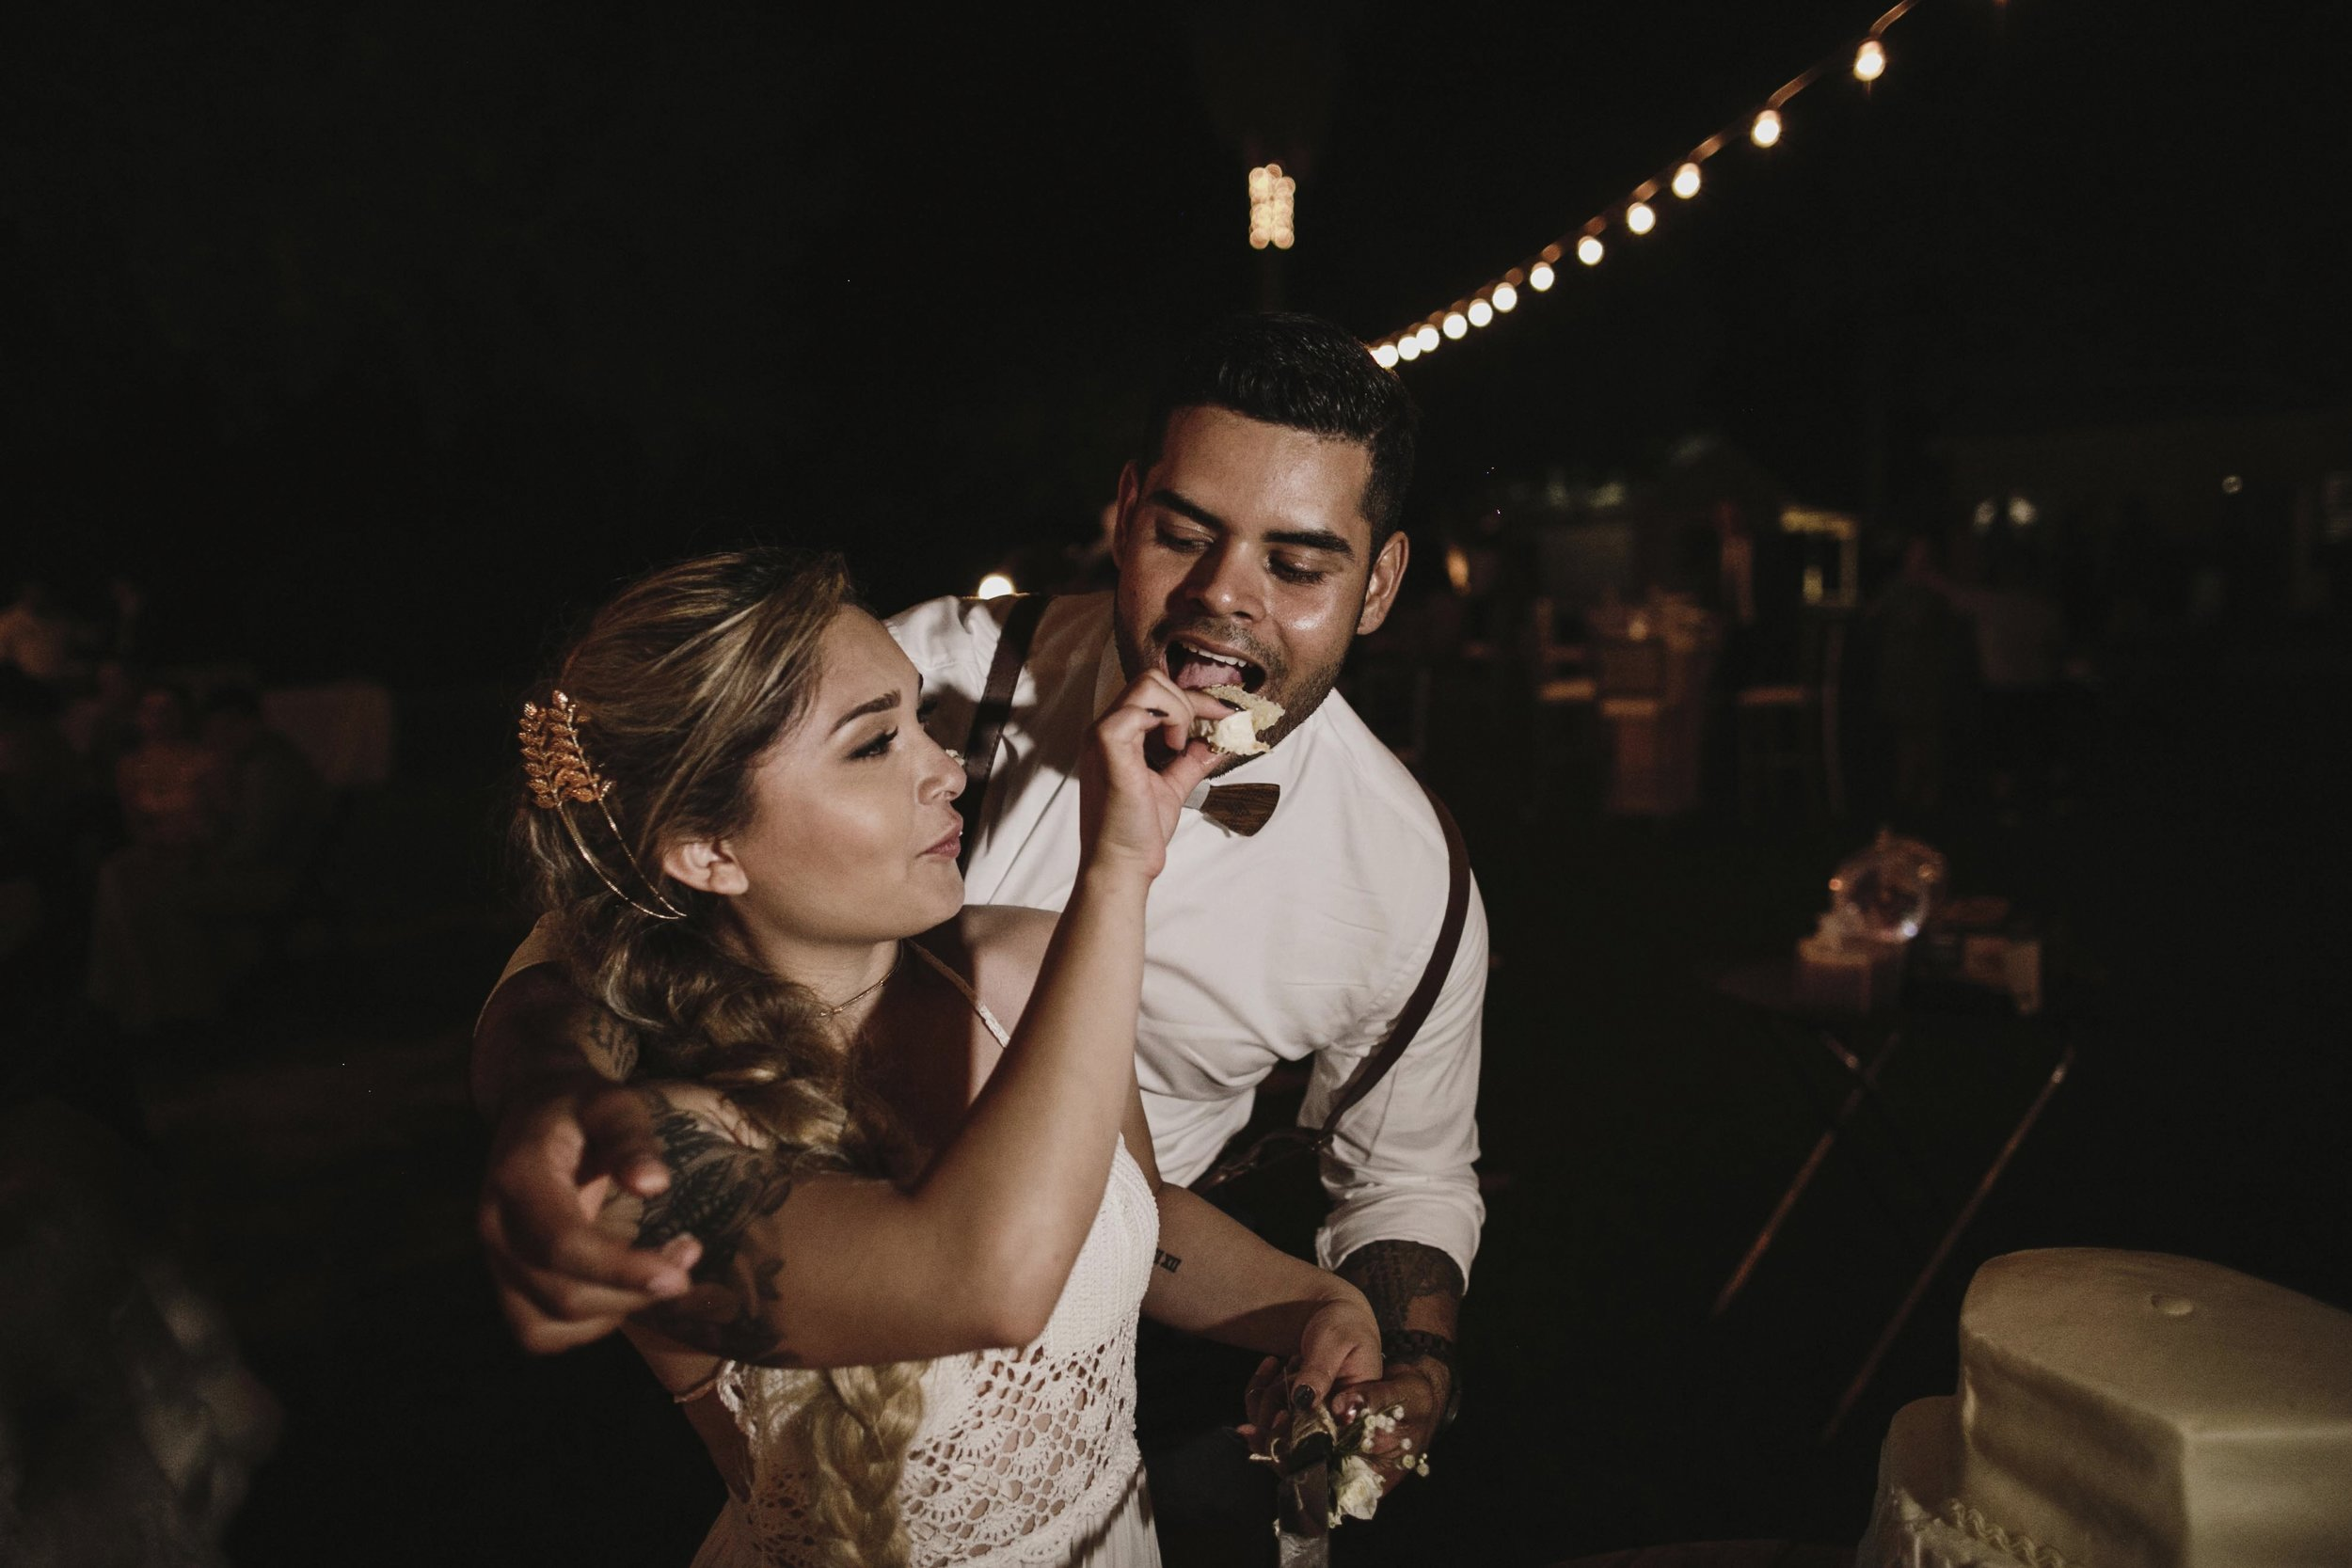 alfonso_flores_destination_wedding_photography_rancho_la_pergola_brownsville_texas87.jpg